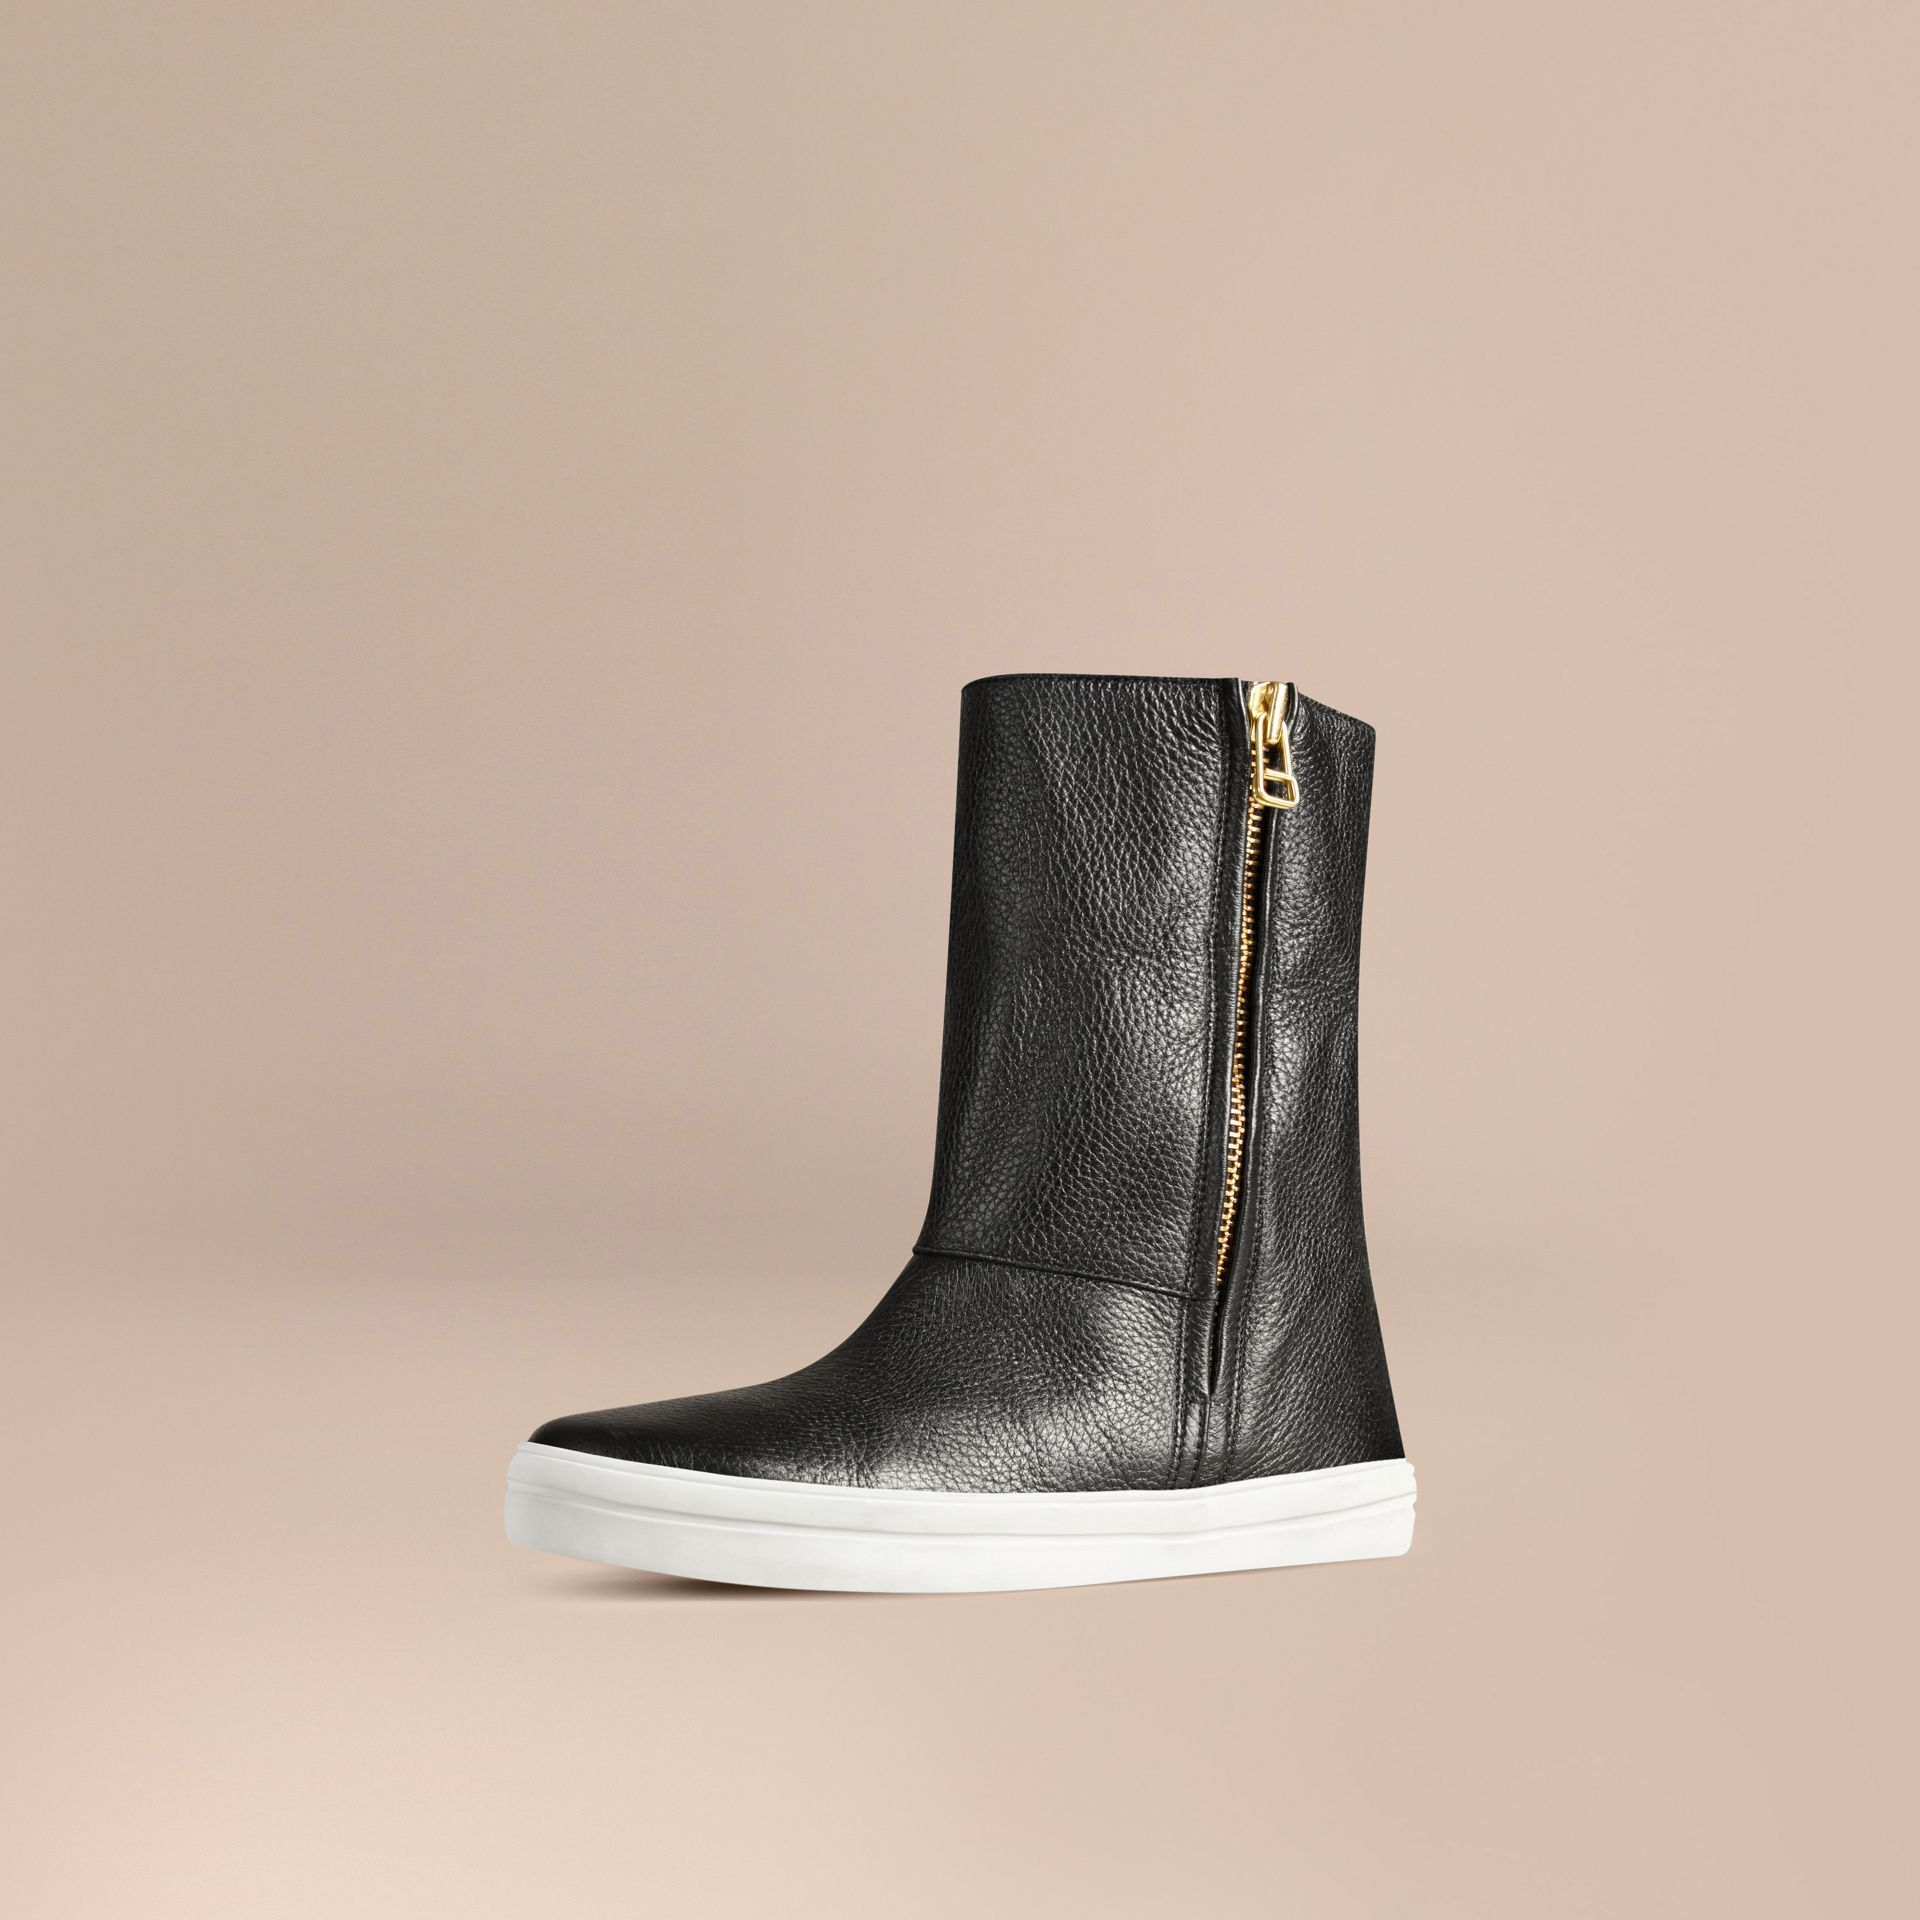 Shearling-lined Grainy Leather Ankle Boots in Black - Women | Burberry - gallery image 2